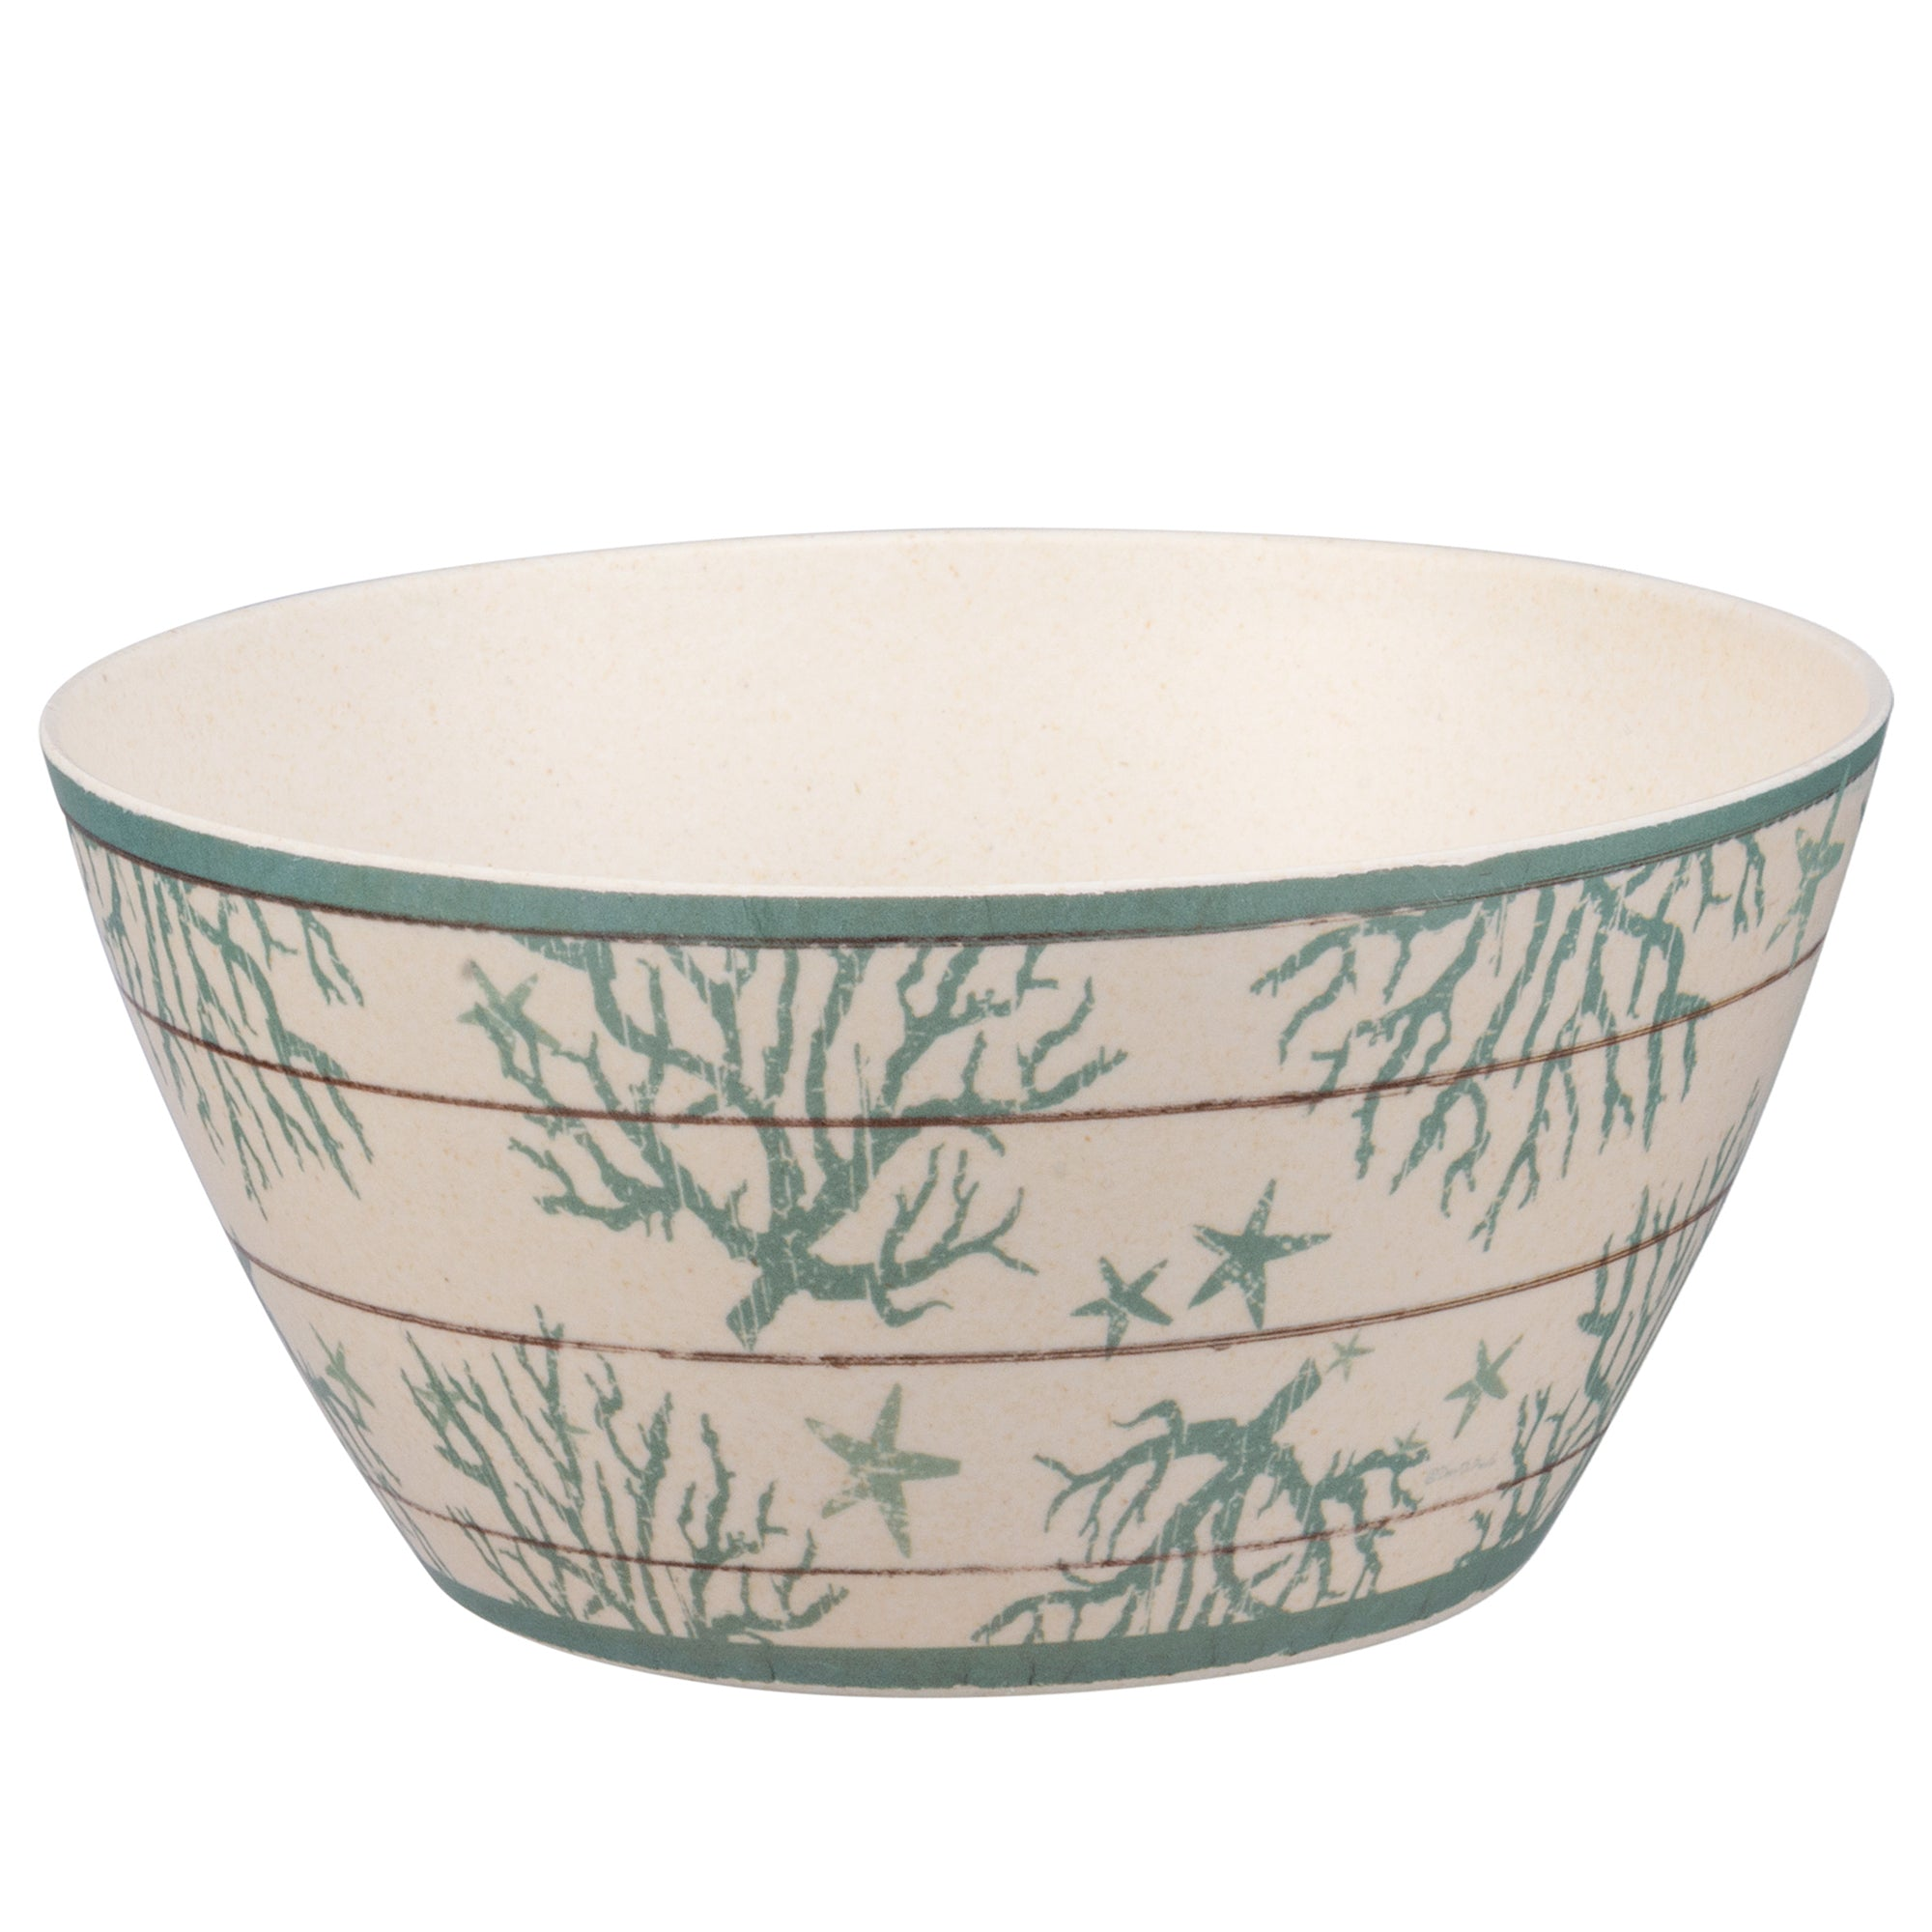 Small Coral Bowl - Bamboo